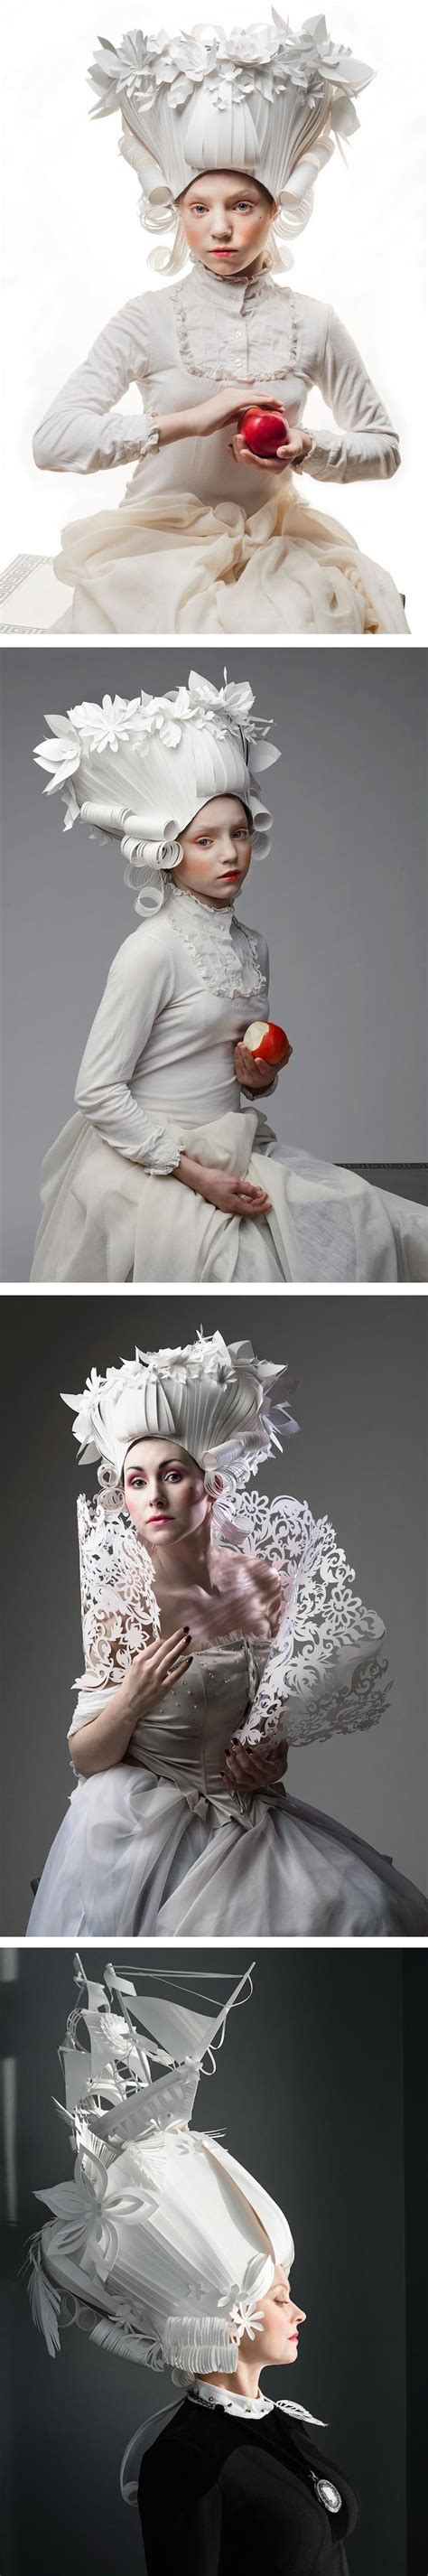 Blumen Aus Papier 3634 by Asya Kozina Constructs Elaborate Baroque Wigs Out Of Paper